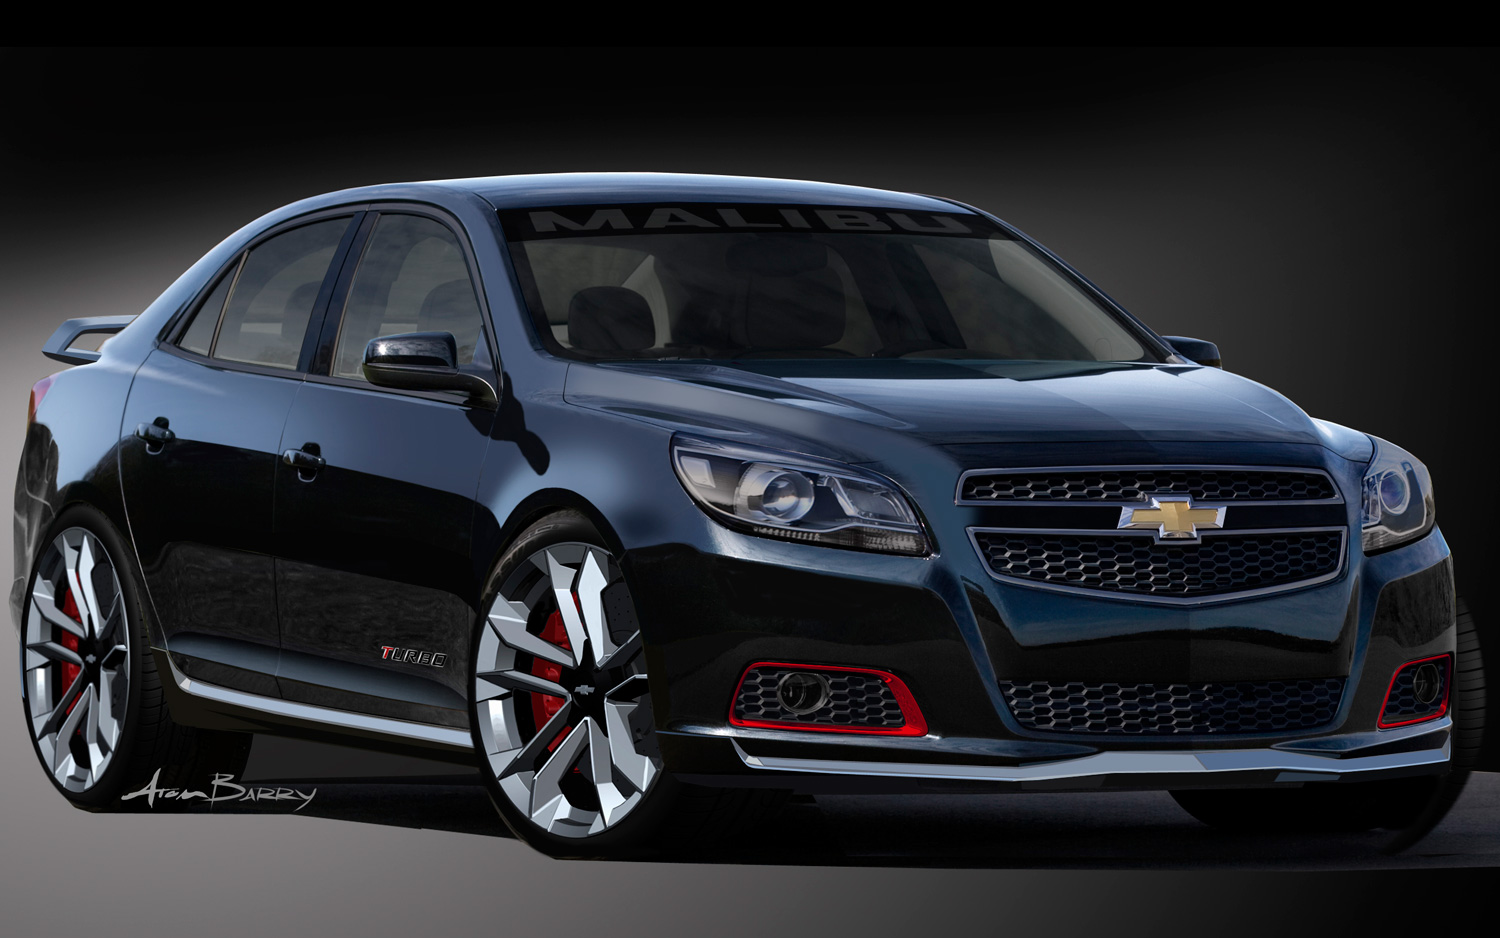 hight resolution of sema sedans 2013 chevrolet malibu turbo and 2014 chevrolet impala ready for sema